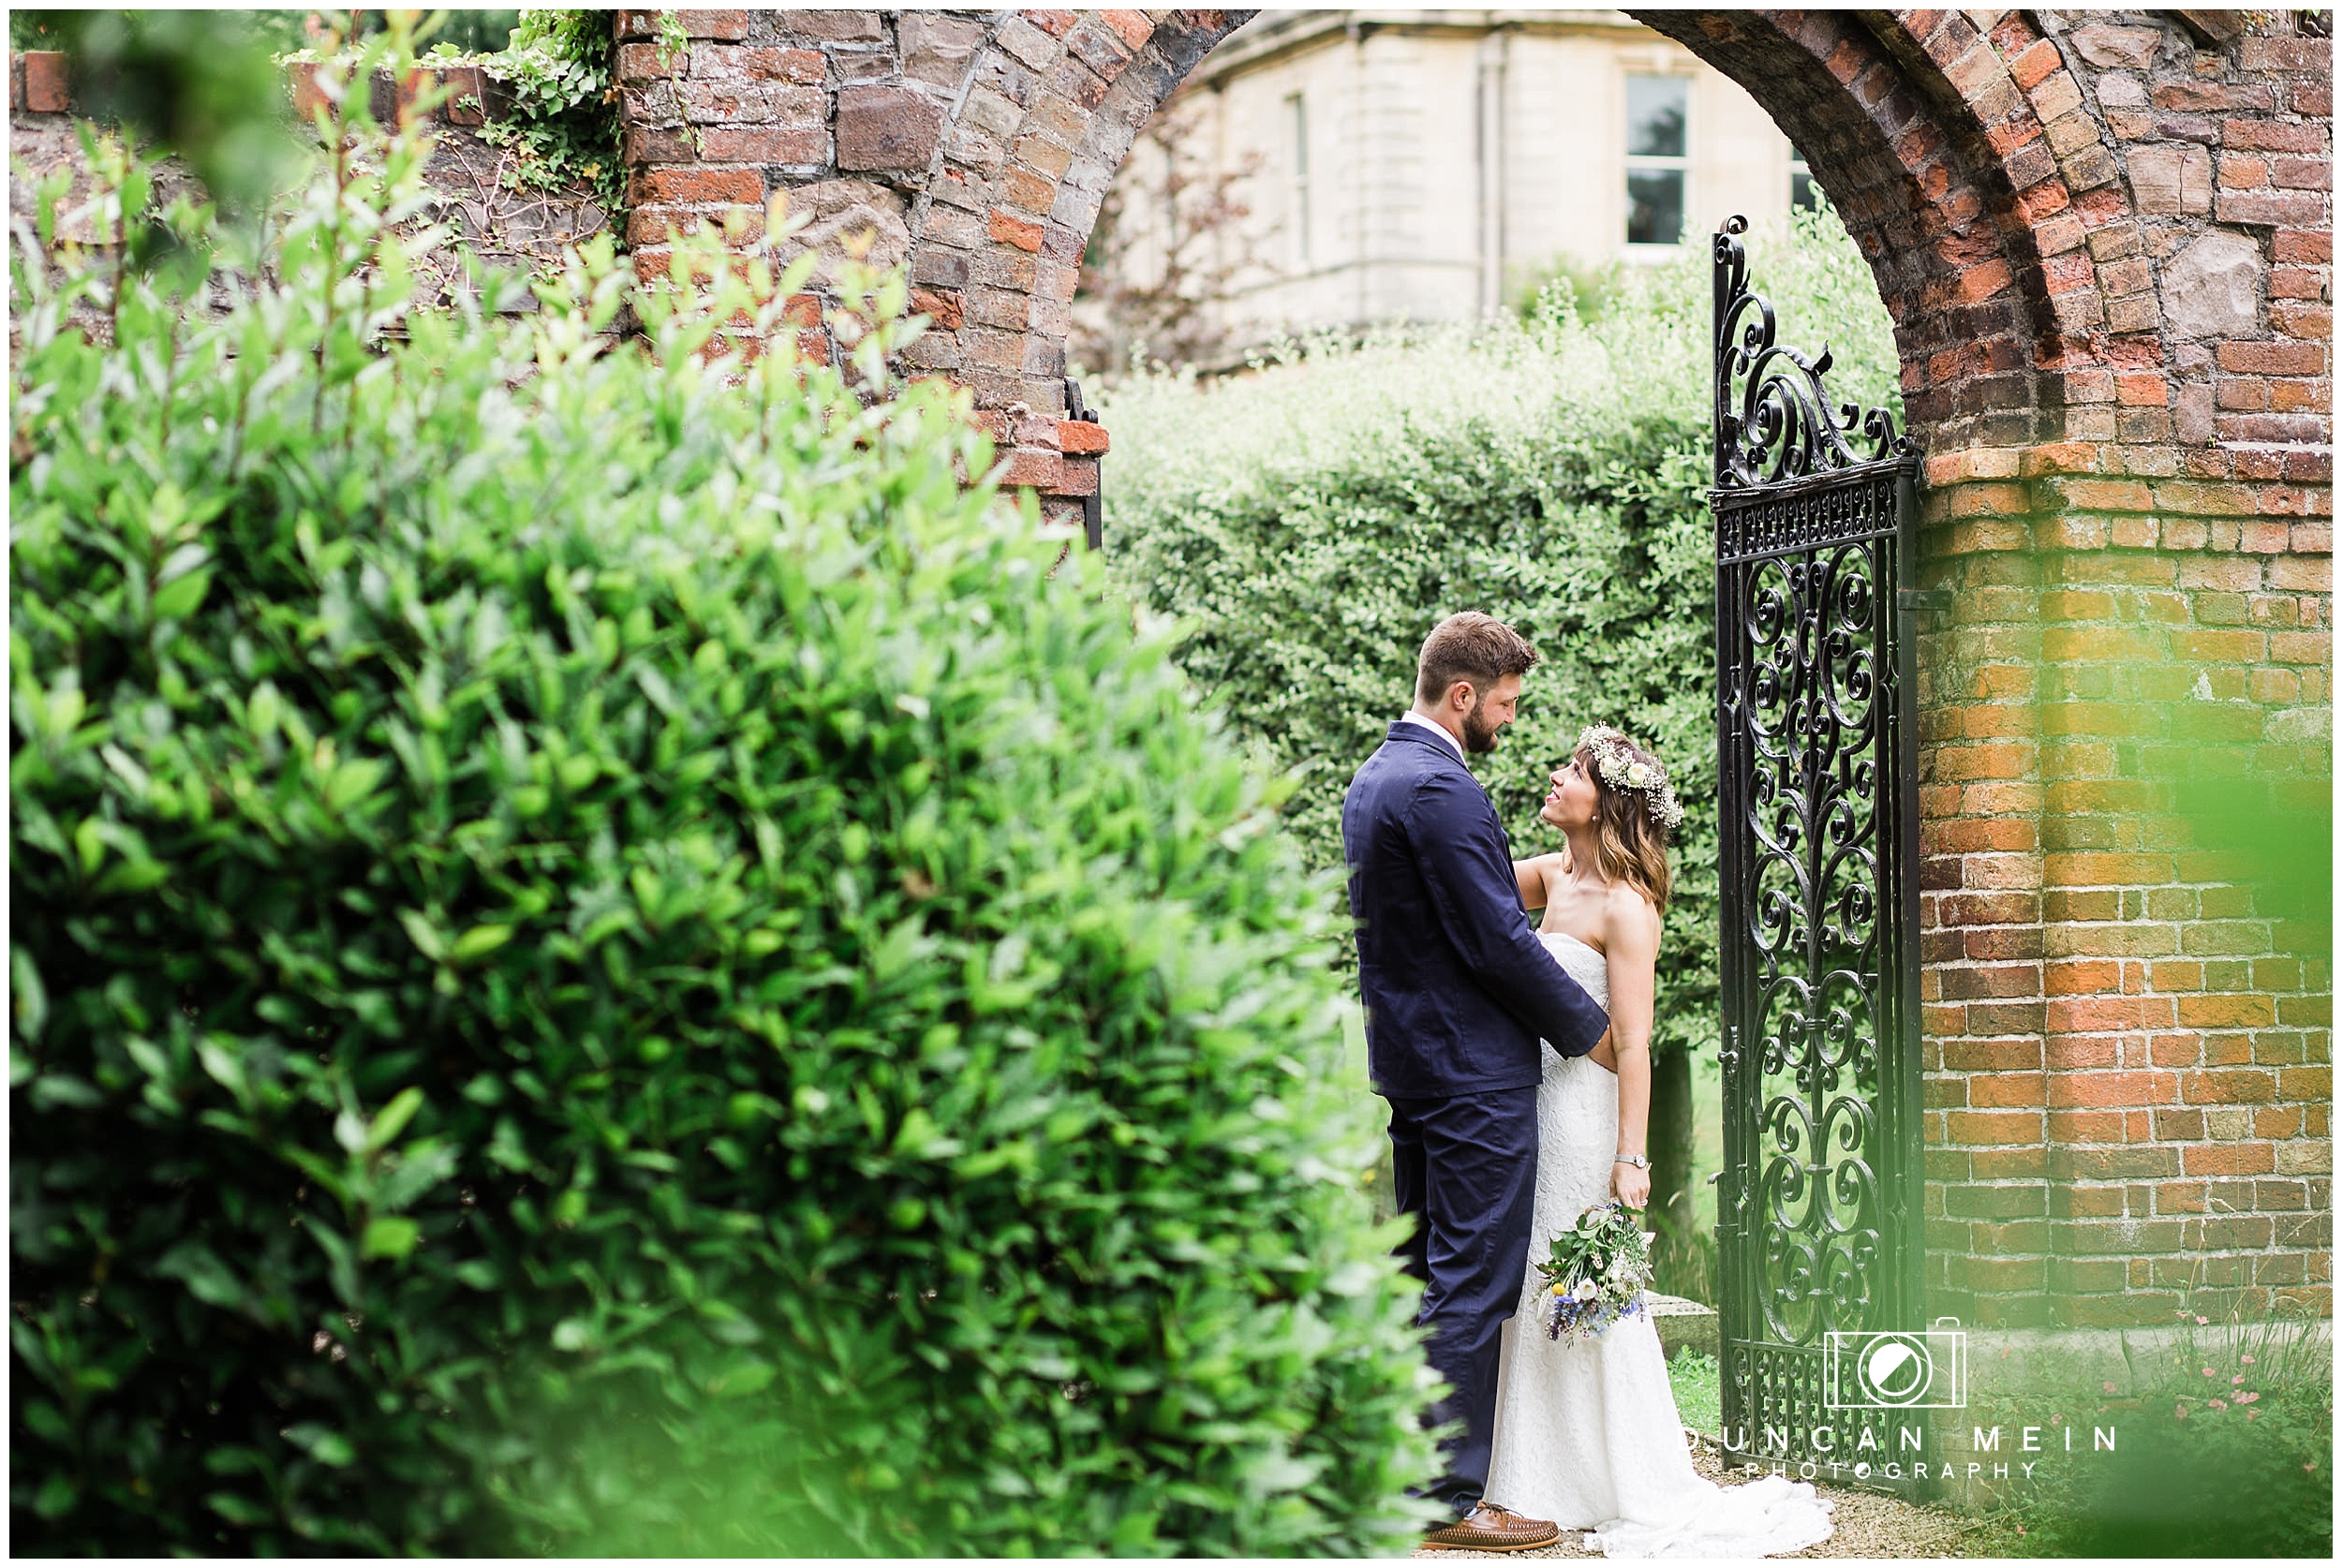 Wedding at Goldney Hall